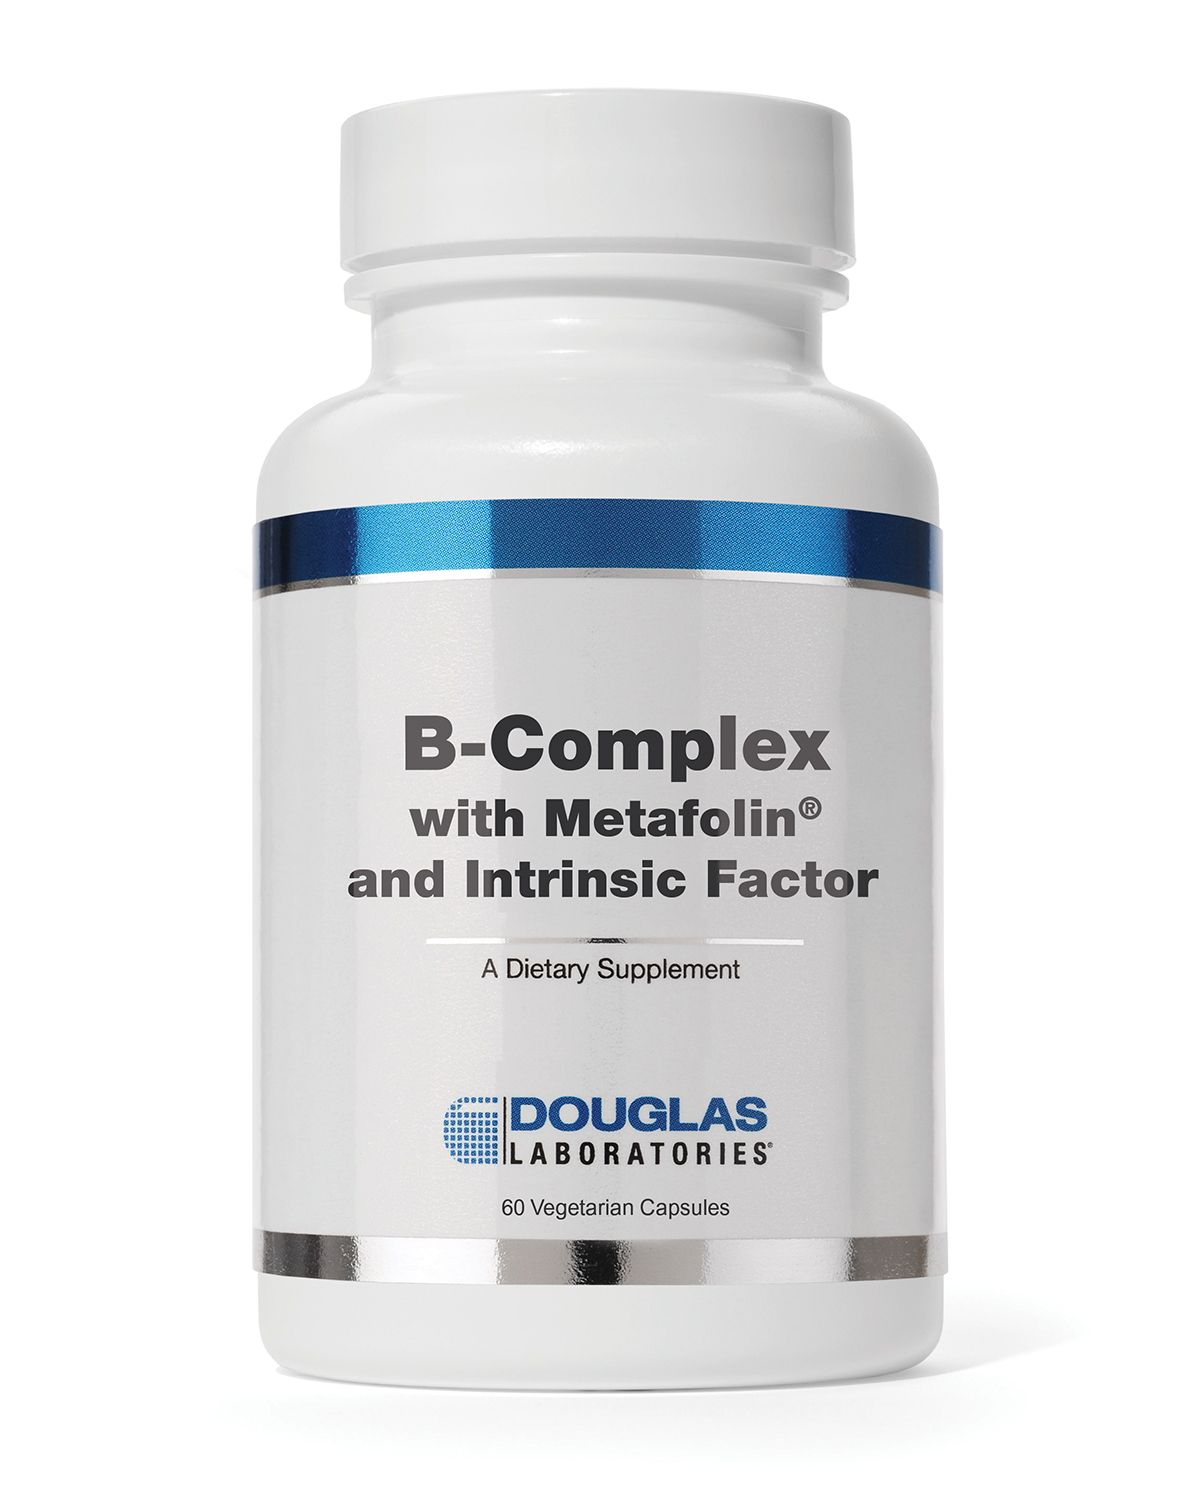 B complex with Metafolin and Intrinsic Factor